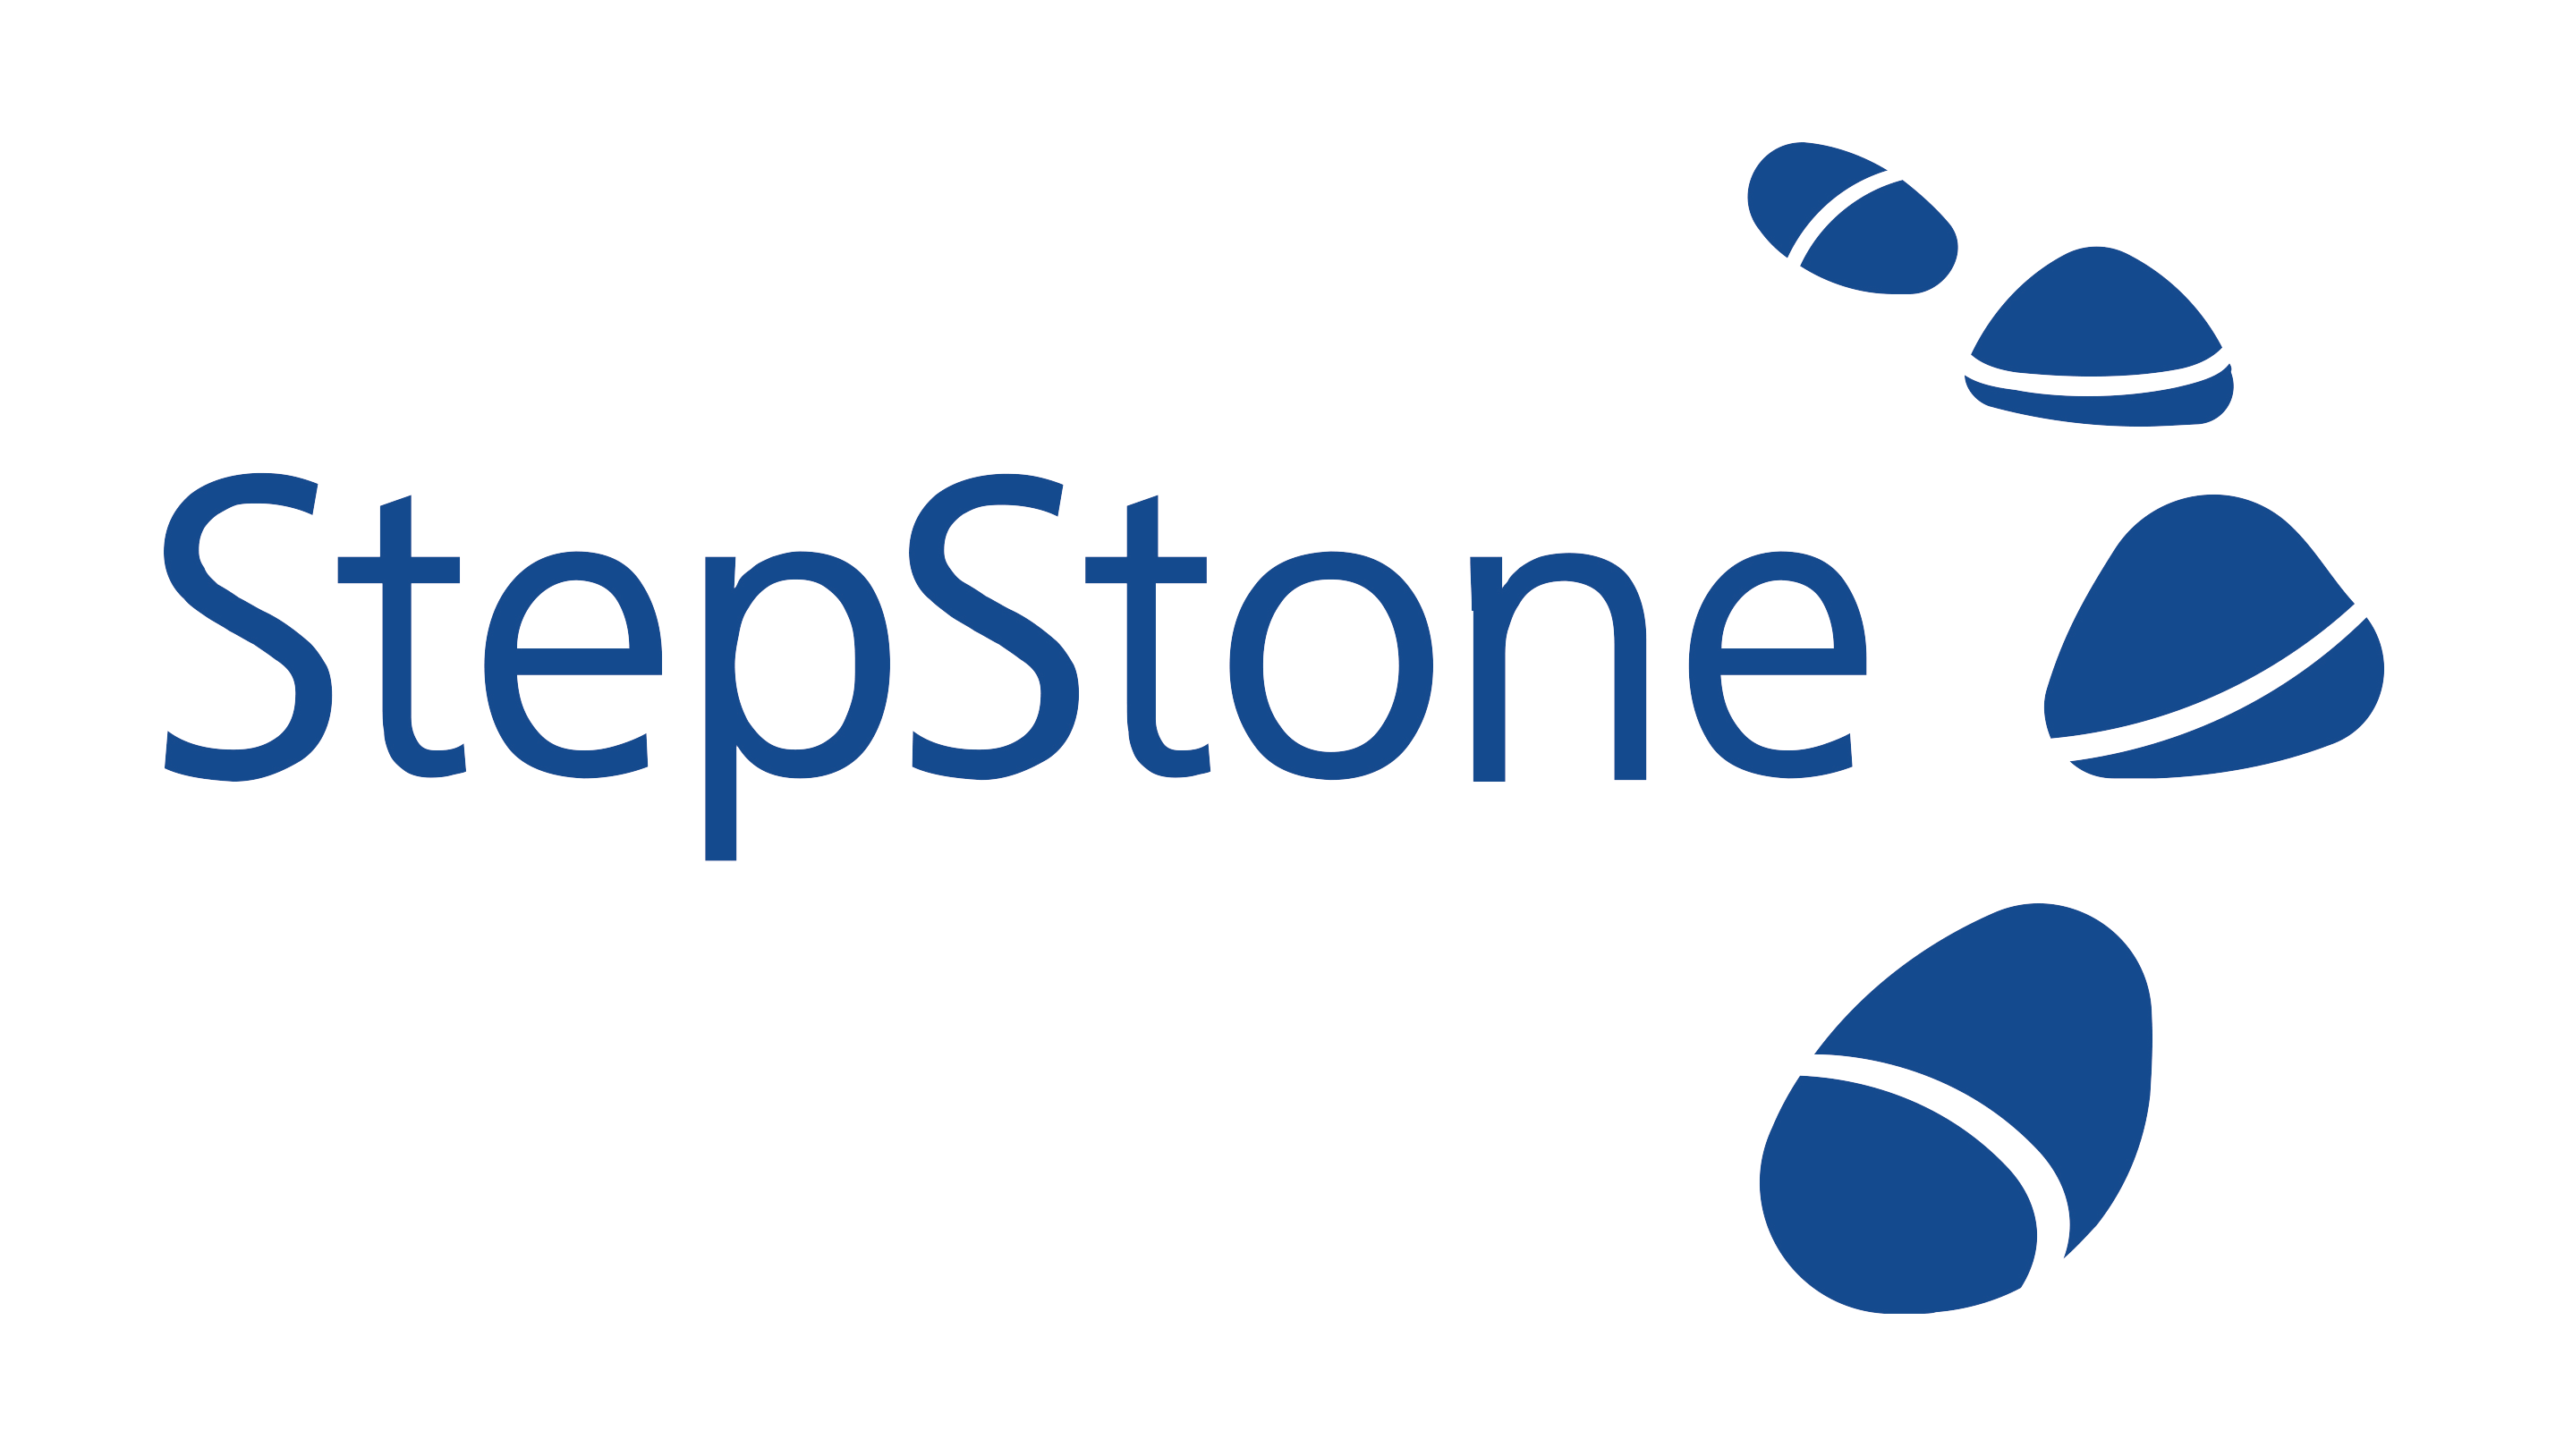 StepStone, Step Stone